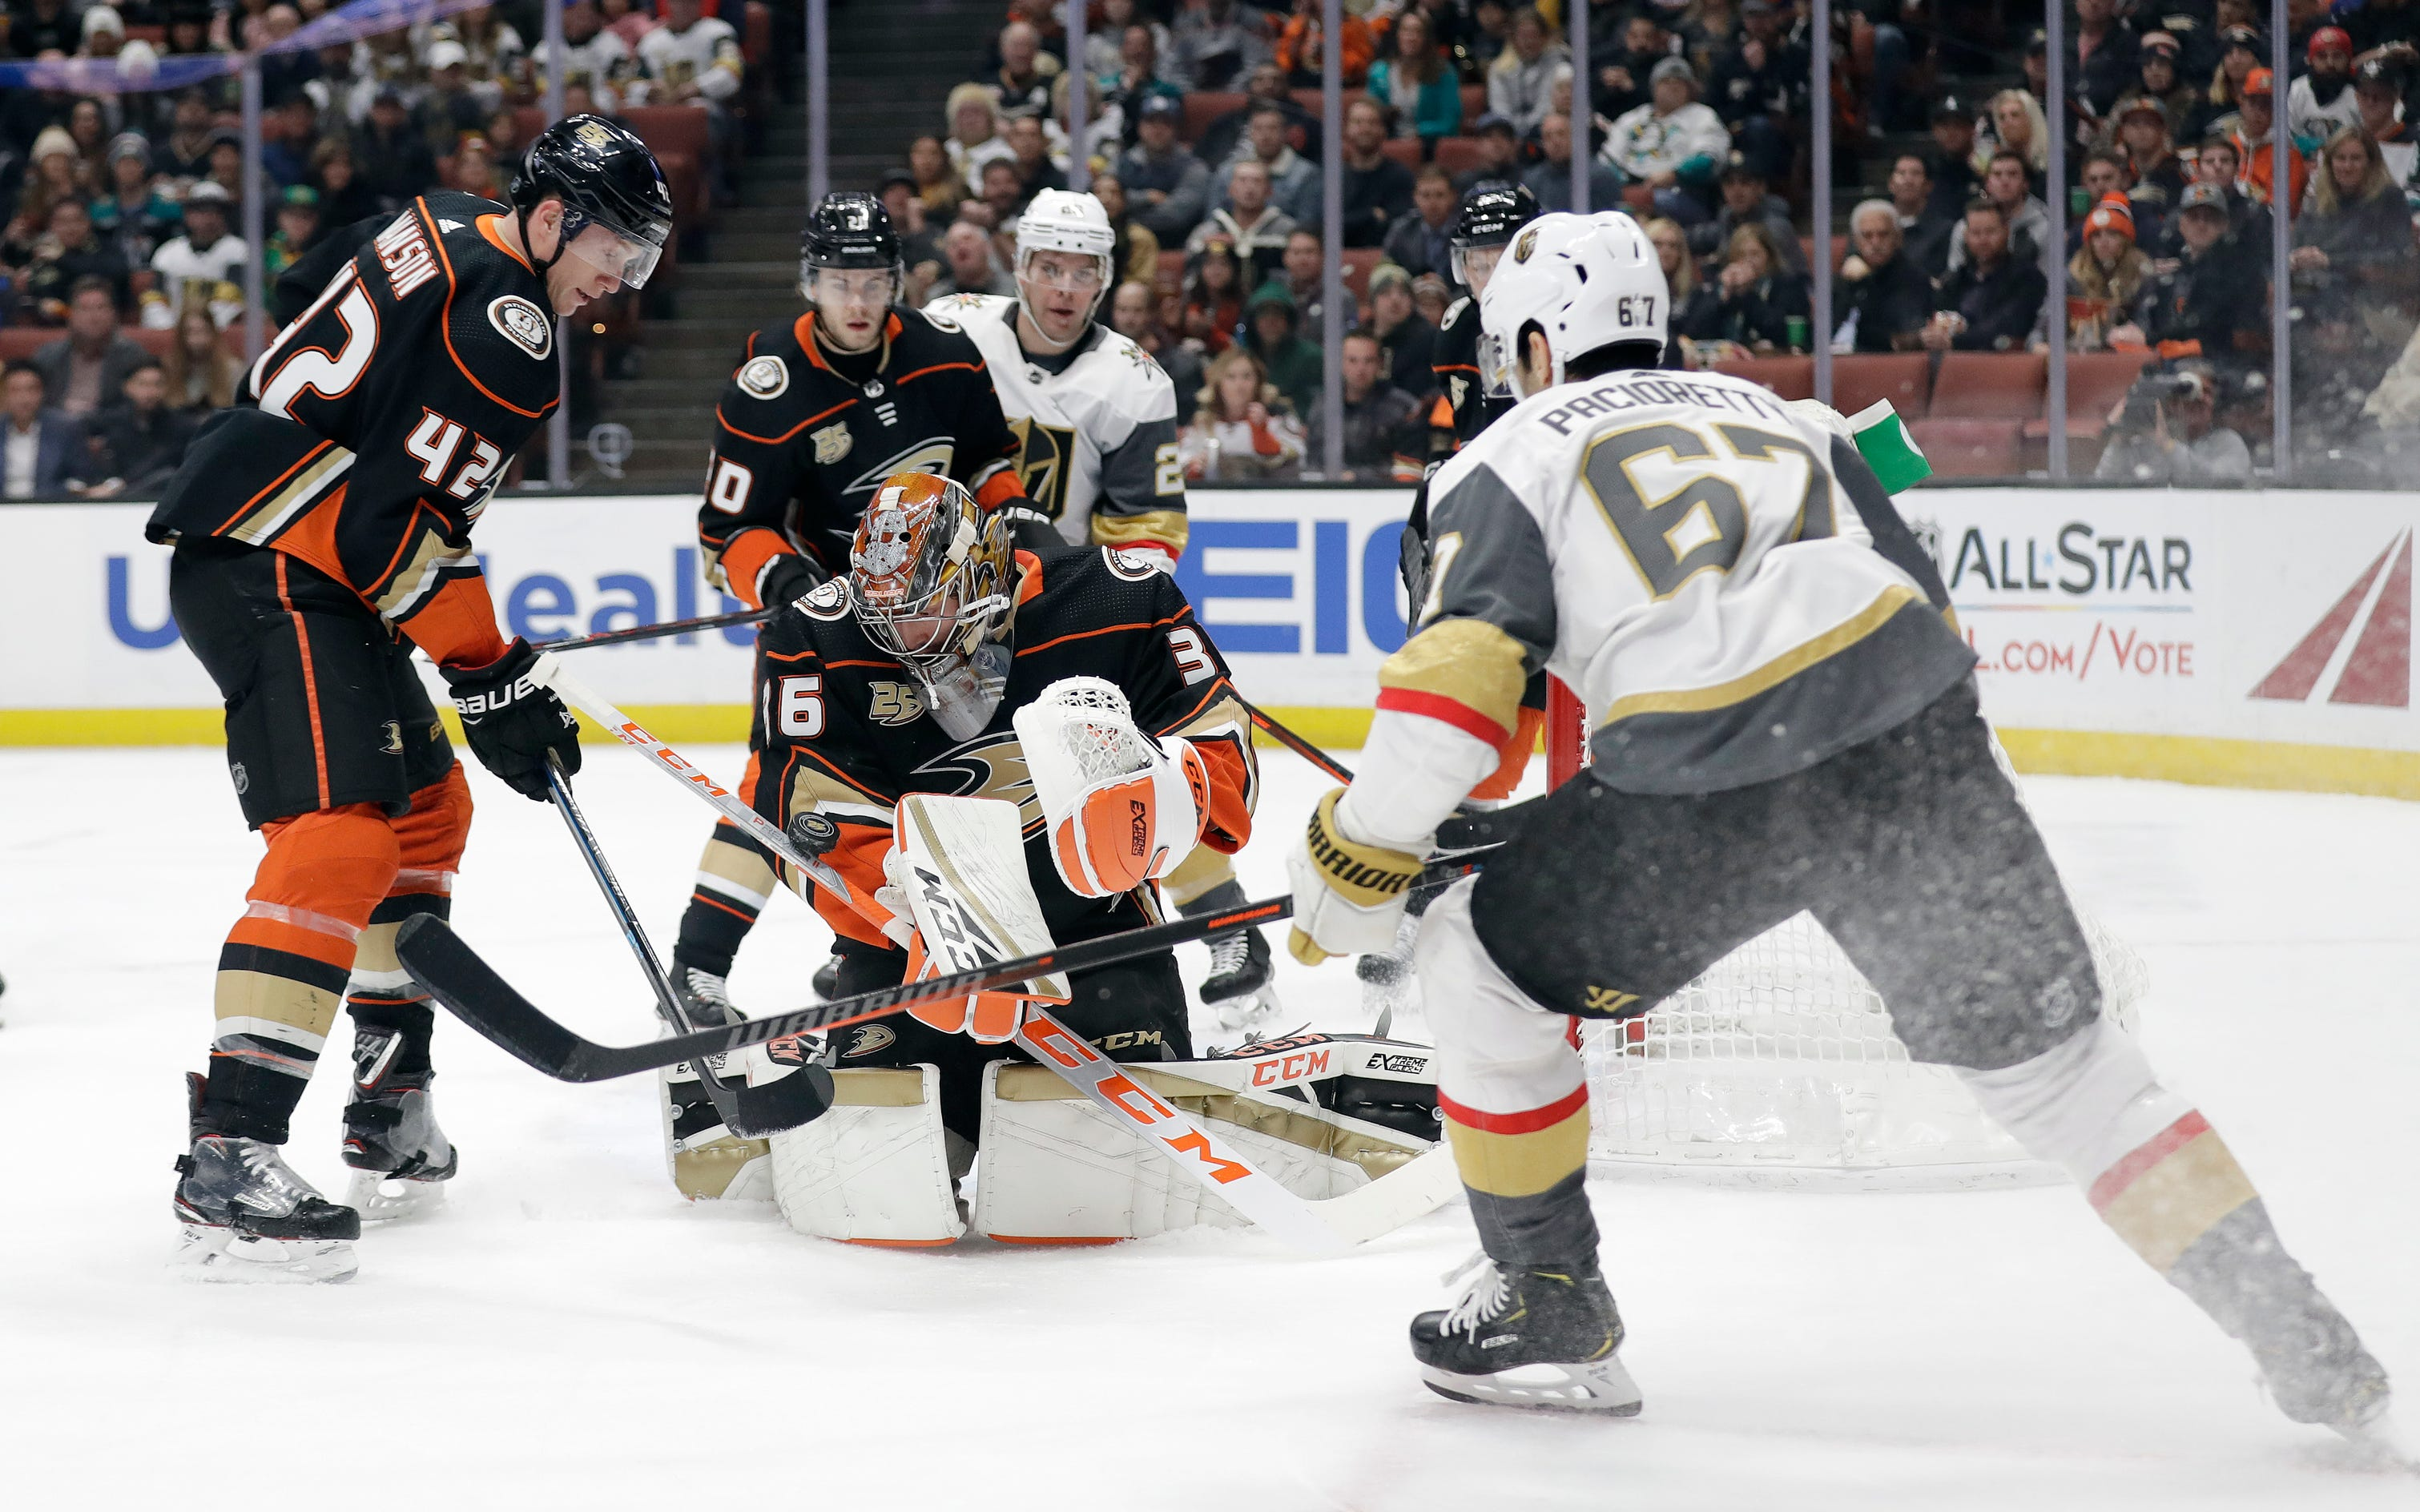 Golden Knights take down Ducks 3-2 for 5th straight win